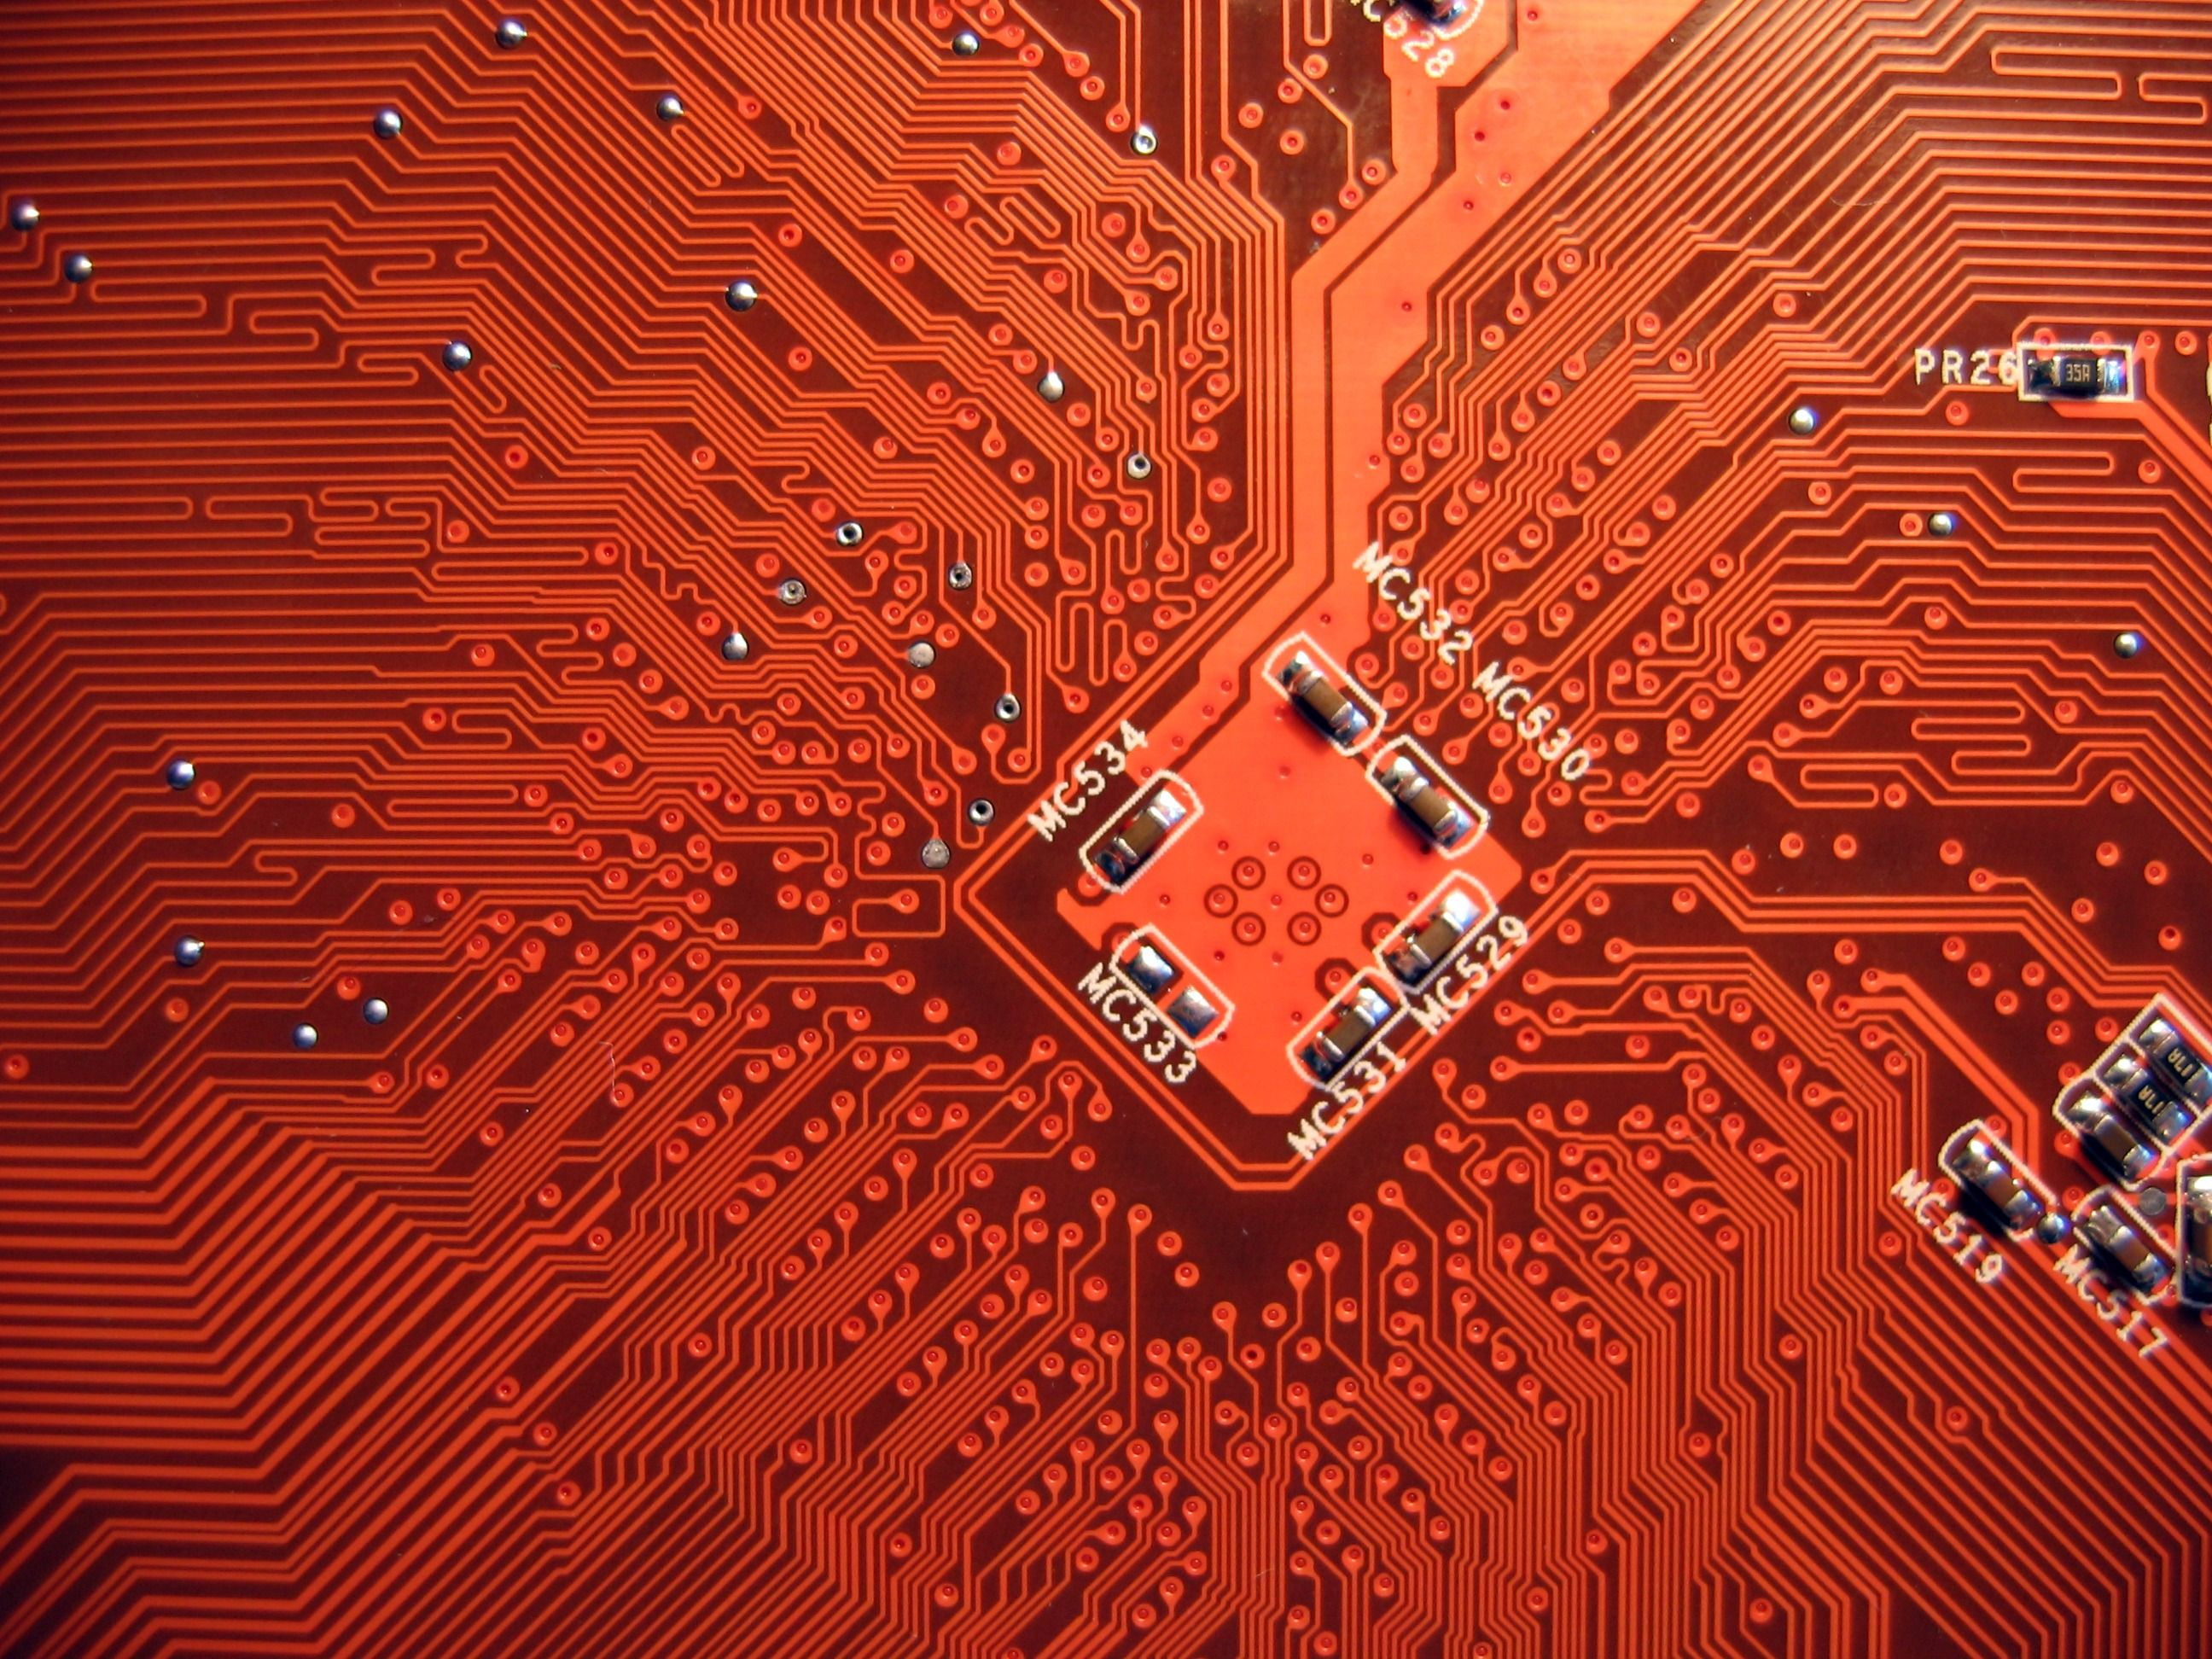 technology | Science & Technology | Circuit board design, Circuit